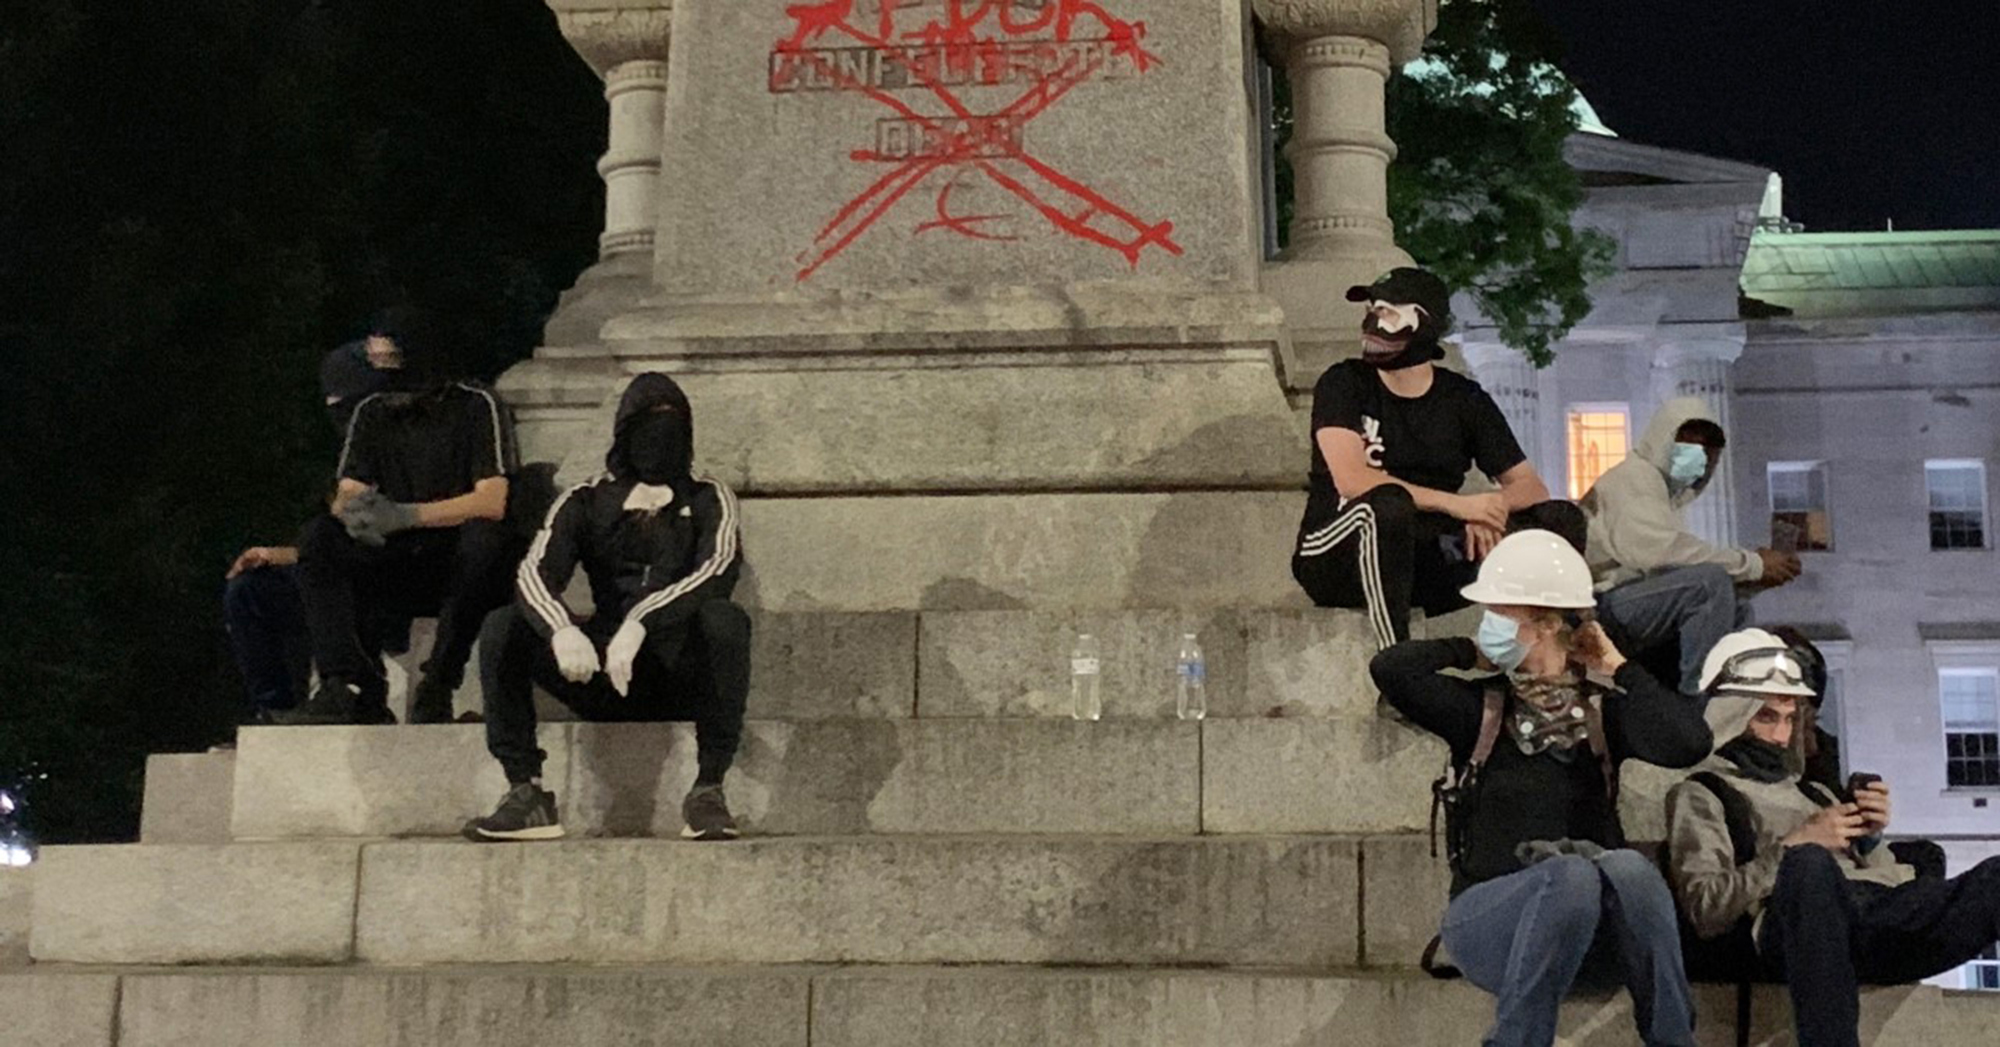 A group of people sit at the base of a confederate statue on the grounds of the State Capitol in Raleigh, N.C., after protesters spray-painted messages, May 31, 2020.